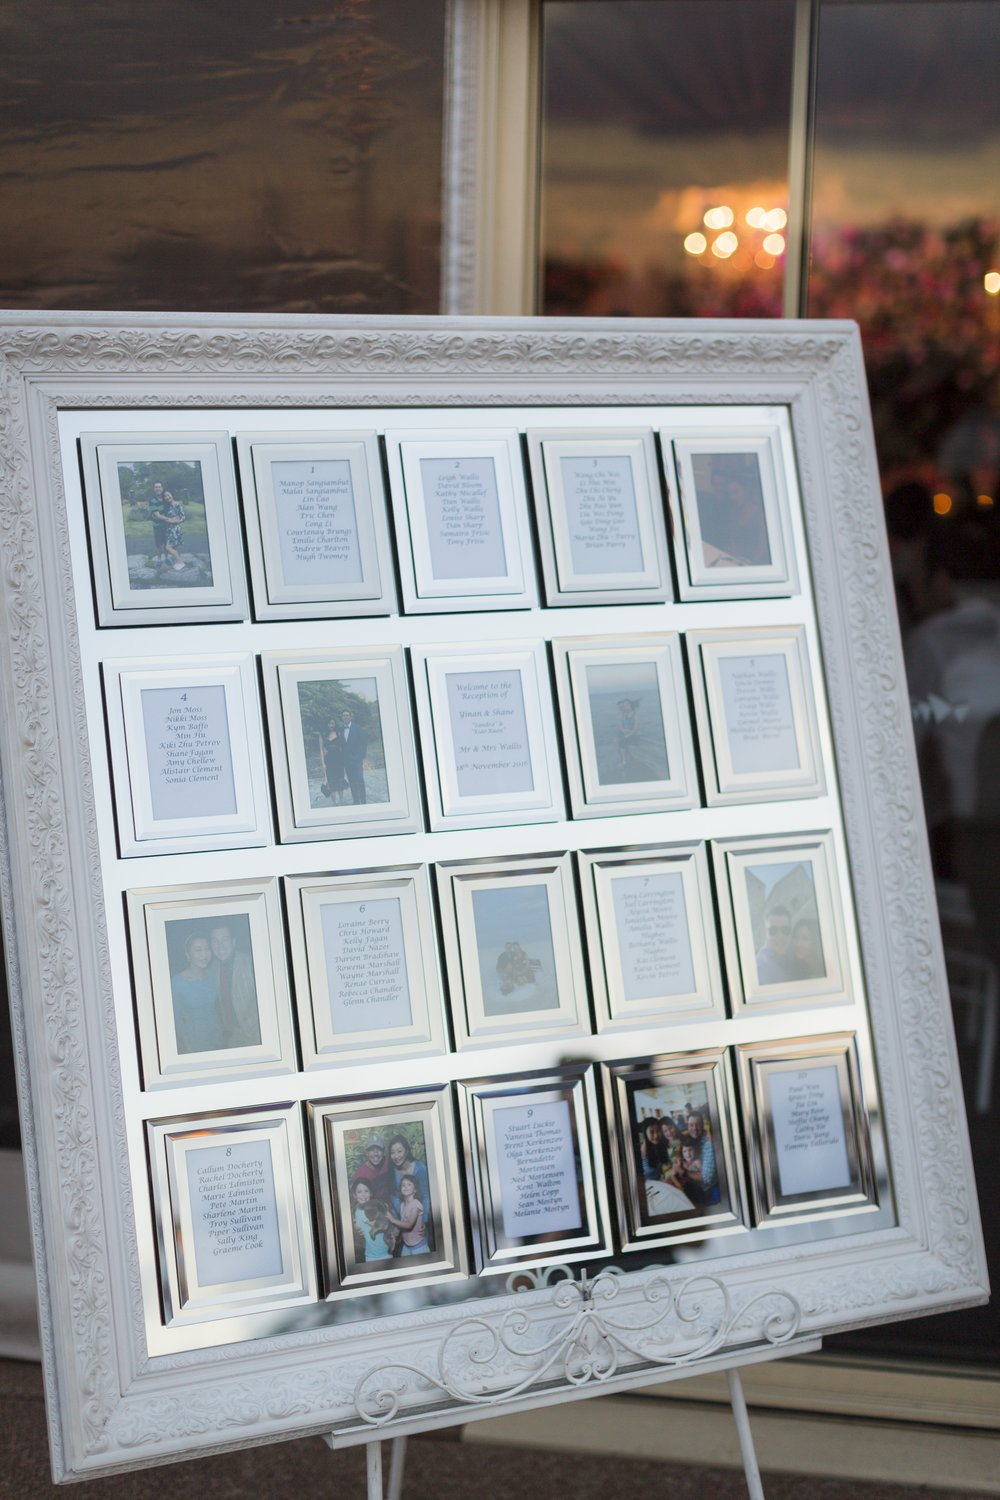 Sydney_wedding_reception_decor_20_frame_white_mirror_seating_chart_plan_easel.jpg